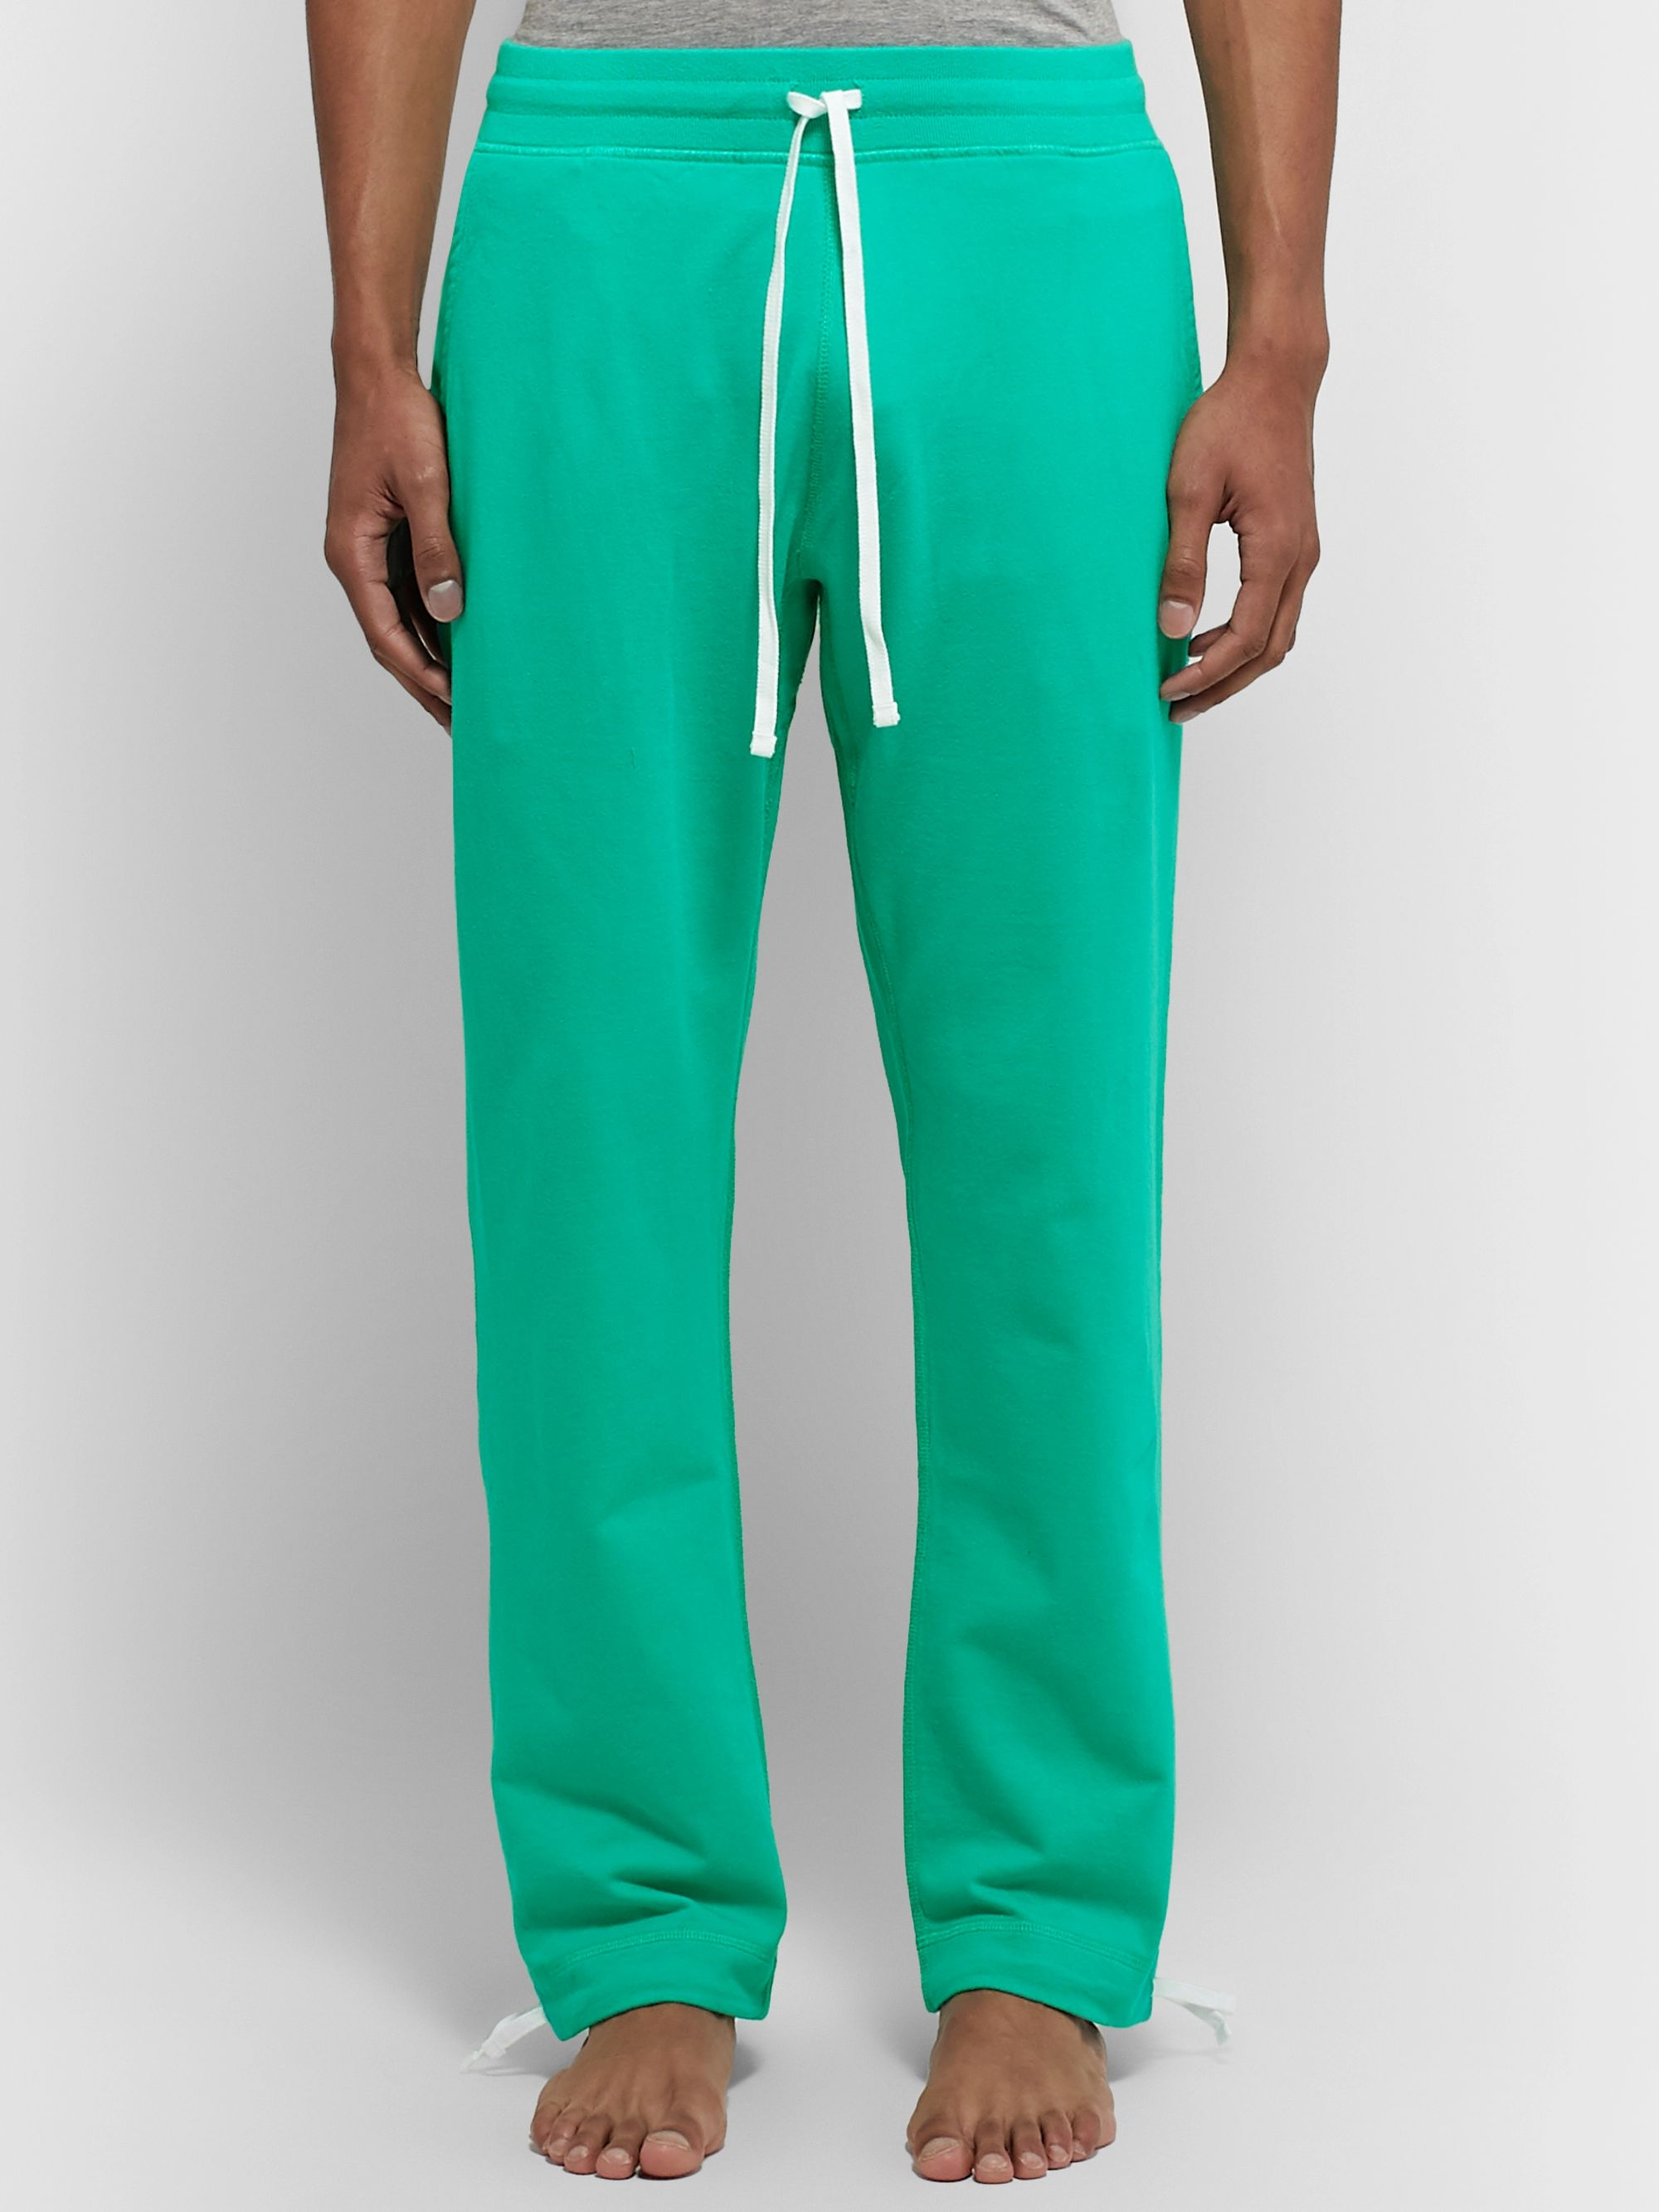 DISTRICT VISION + Reigning Champ Radical Retreat Loopback Cotton-Jersey Sweatpants